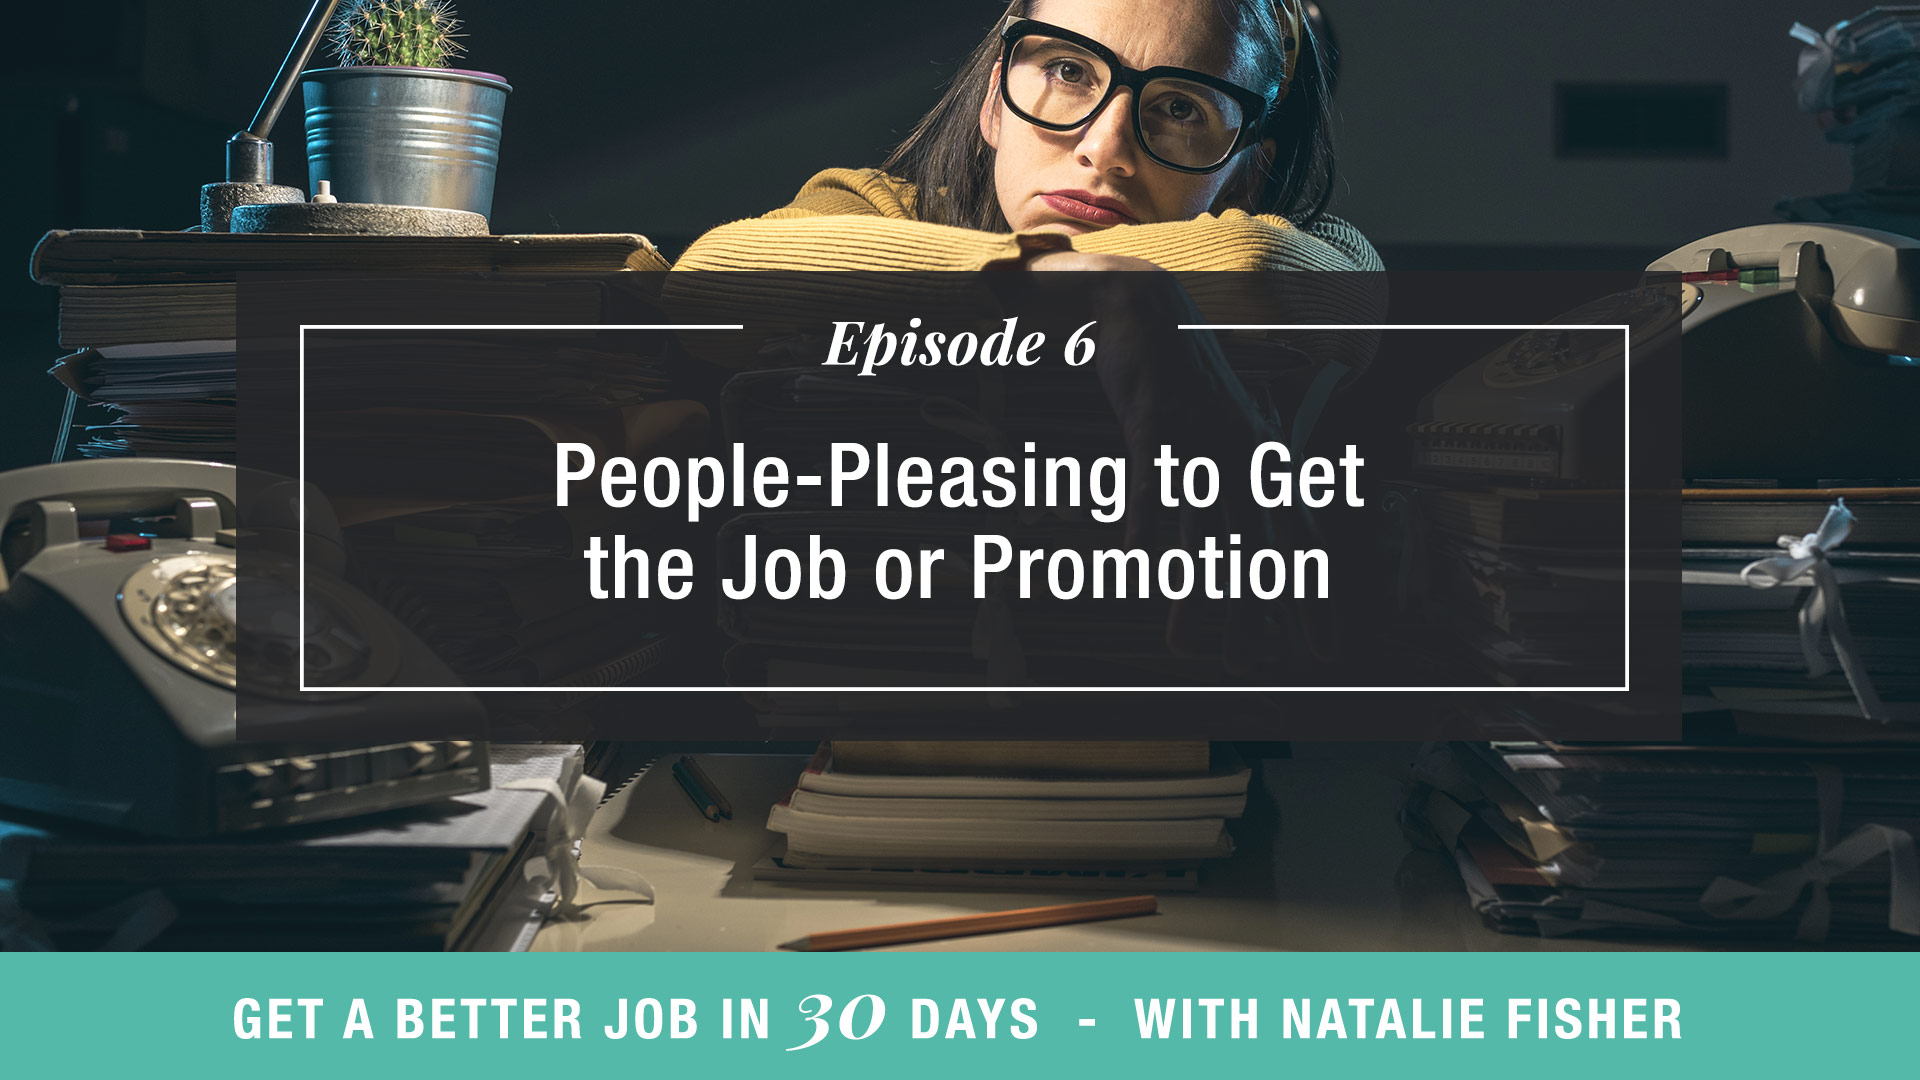 People-Pleasing to Get the Job or Promotion